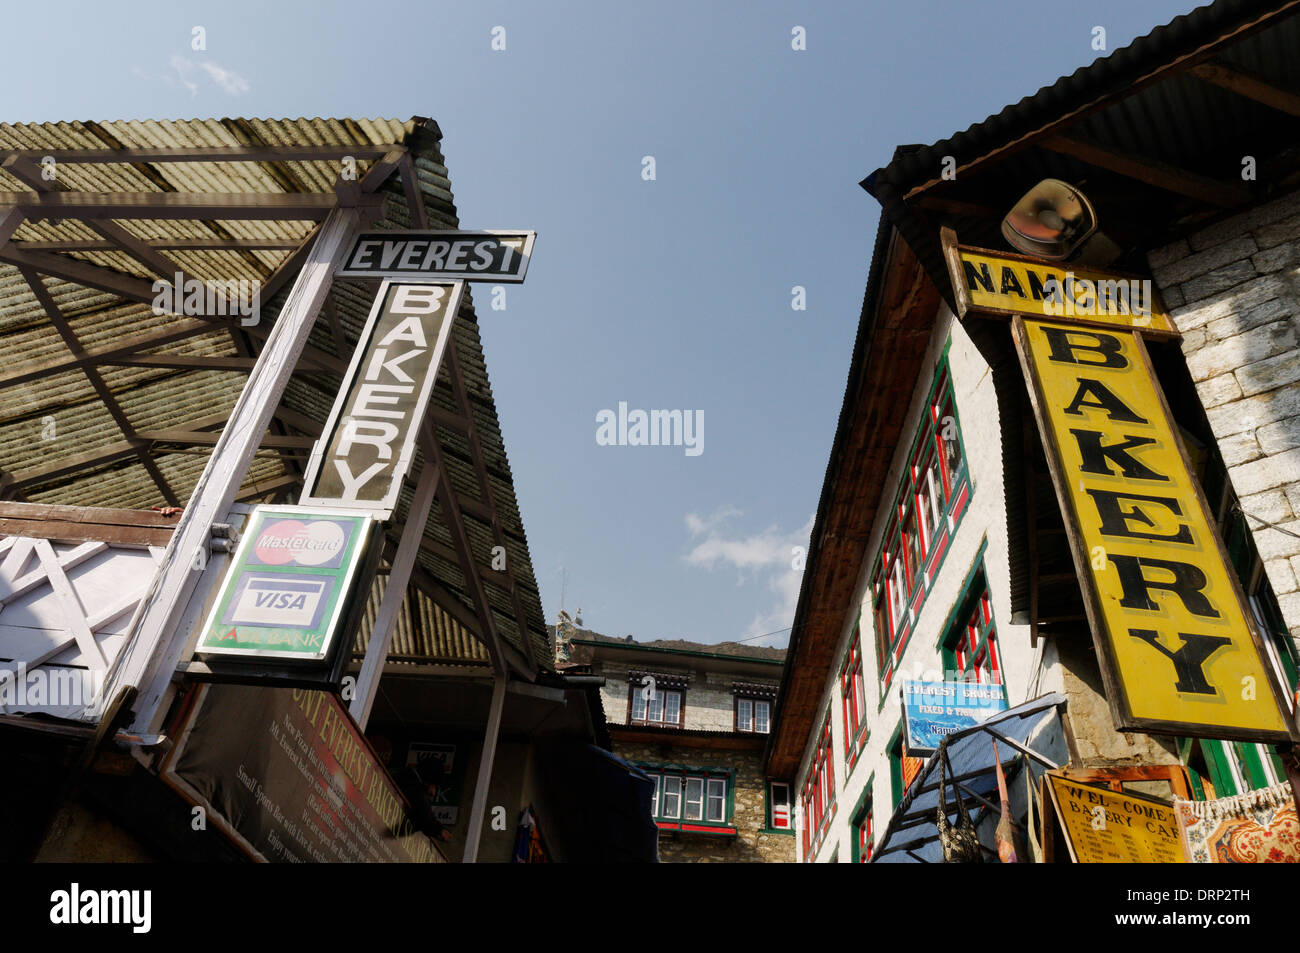 Two bakeries in Namche Bazaar, the Everest Bakery and the Namche Bakery - Stock Image